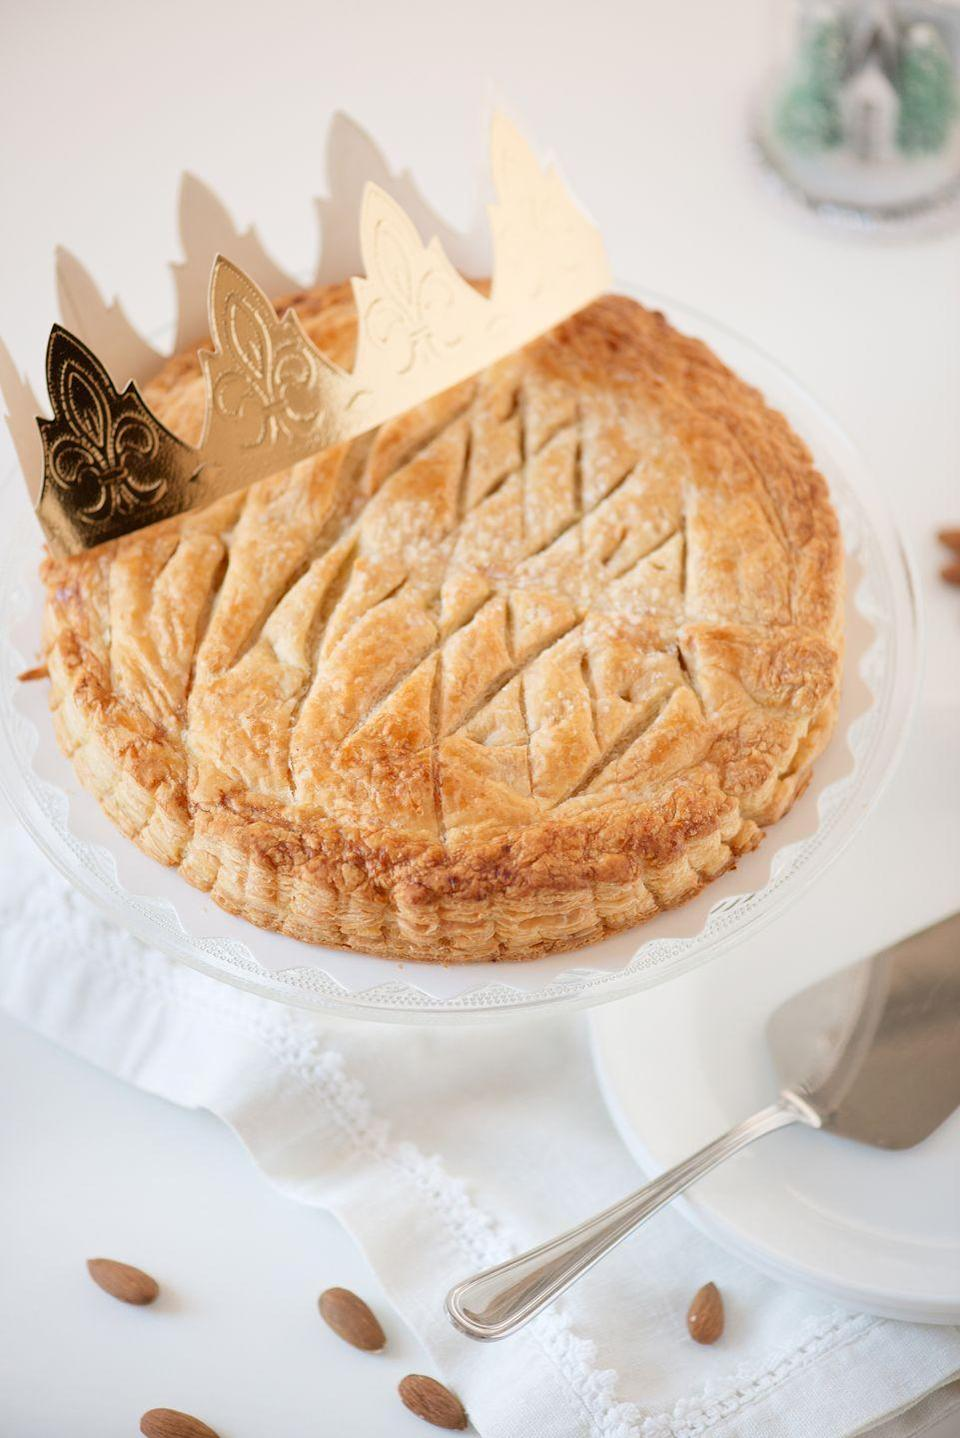 "<p>One of France's new year traditions actually takes place a few days after Jan. 1. According to France 24, a Paris-based news network, the <em>galette des rois</em>, or <a href=""https://www.france24.com/en/20200106-galette-des-rois-france-begins-the-new-year-with-a-cake-for-kings"" rel=""nofollow noopener"" target=""_blank"" data-ylk=""slk:kings cake, is traditionally eaten on the first Sunday"" class=""link rapid-noclick-resp"">kings cake, is traditionally eaten on the first Sunday</a> of the year to celebrate the Epiphany in Christianity. The cake is often made with puff pastry and frangipane, an almond-flavored cream or paste but they can be filled with plenty of other sweets instead. Regardless of its filling, the <em>galette des rois </em>always hides the coveted, fève, or bean, a ceramic trinket or charm, and the person who finds it is graced with good luck. </p><p><a class=""link rapid-noclick-resp"" href=""https://www.amazon.com/Vahine-French-Frangipane-200-grams/dp/B00DUJ06D4/?tag=syn-yahoo-20&ascsubtag=%5Bartid%7C10063.g.34903192%5Bsrc%7Cyahoo-us"" rel=""nofollow noopener"" target=""_blank"" data-ylk=""slk:BUY FRANGIPANE"">BUY FRANGIPANE</a></p>"